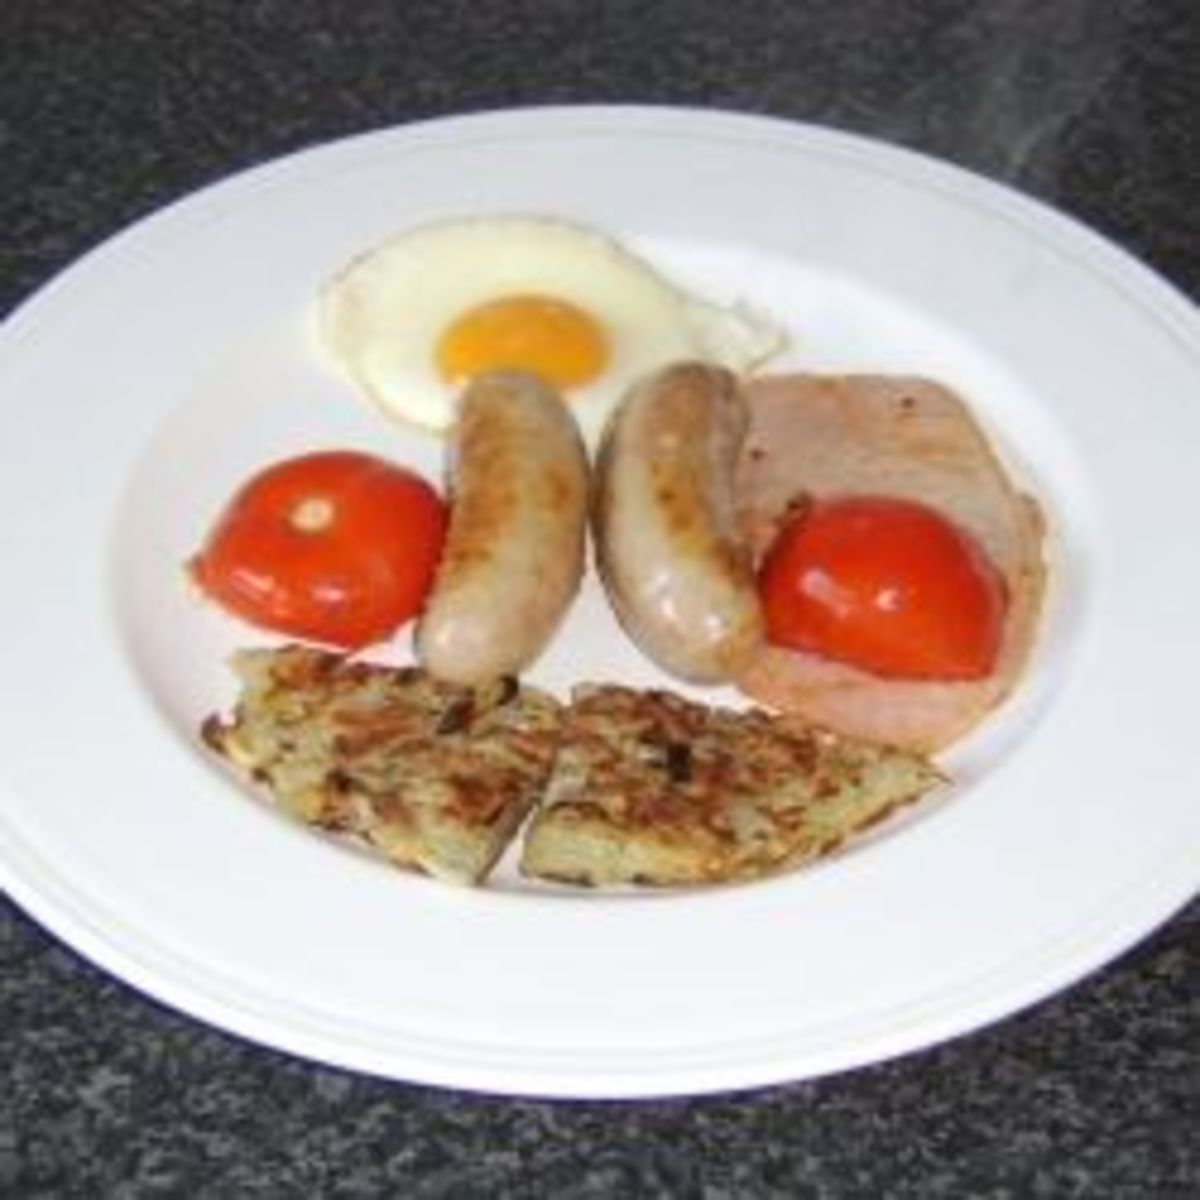 A slightly different but healthier take on a full English breakfast